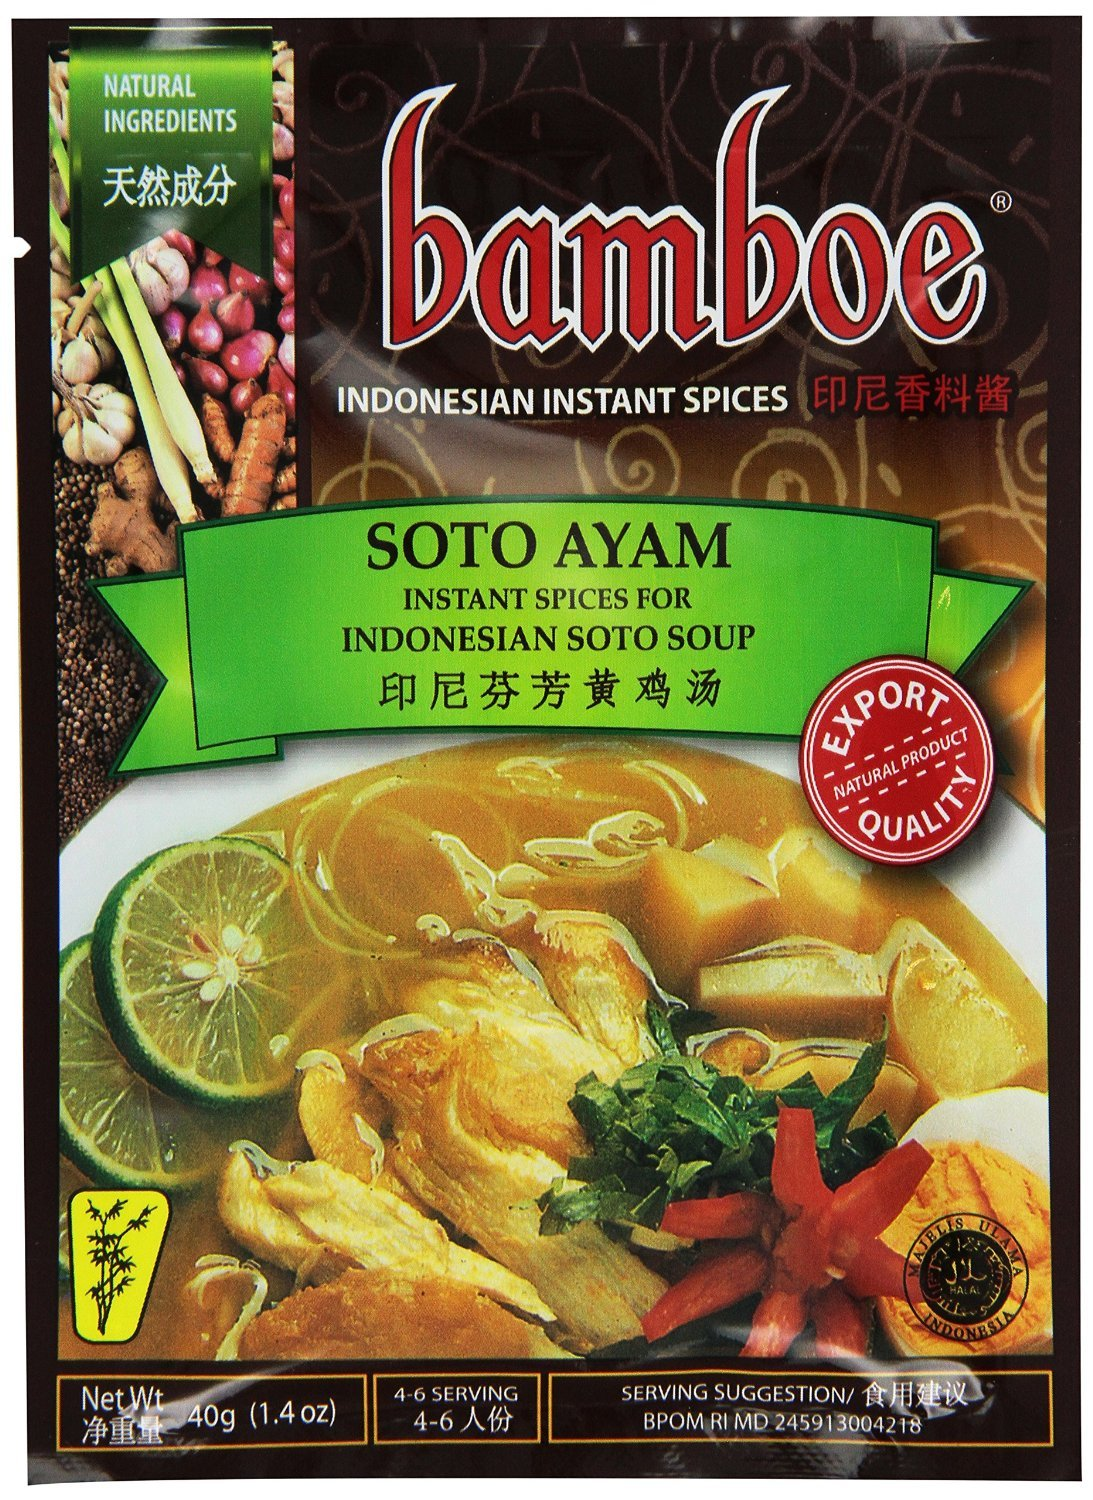 Bamboe Soto Ayam Yellow Ranking Cash special price TOP13 Chicken Soup Pack - 1.4oz Seasoning o